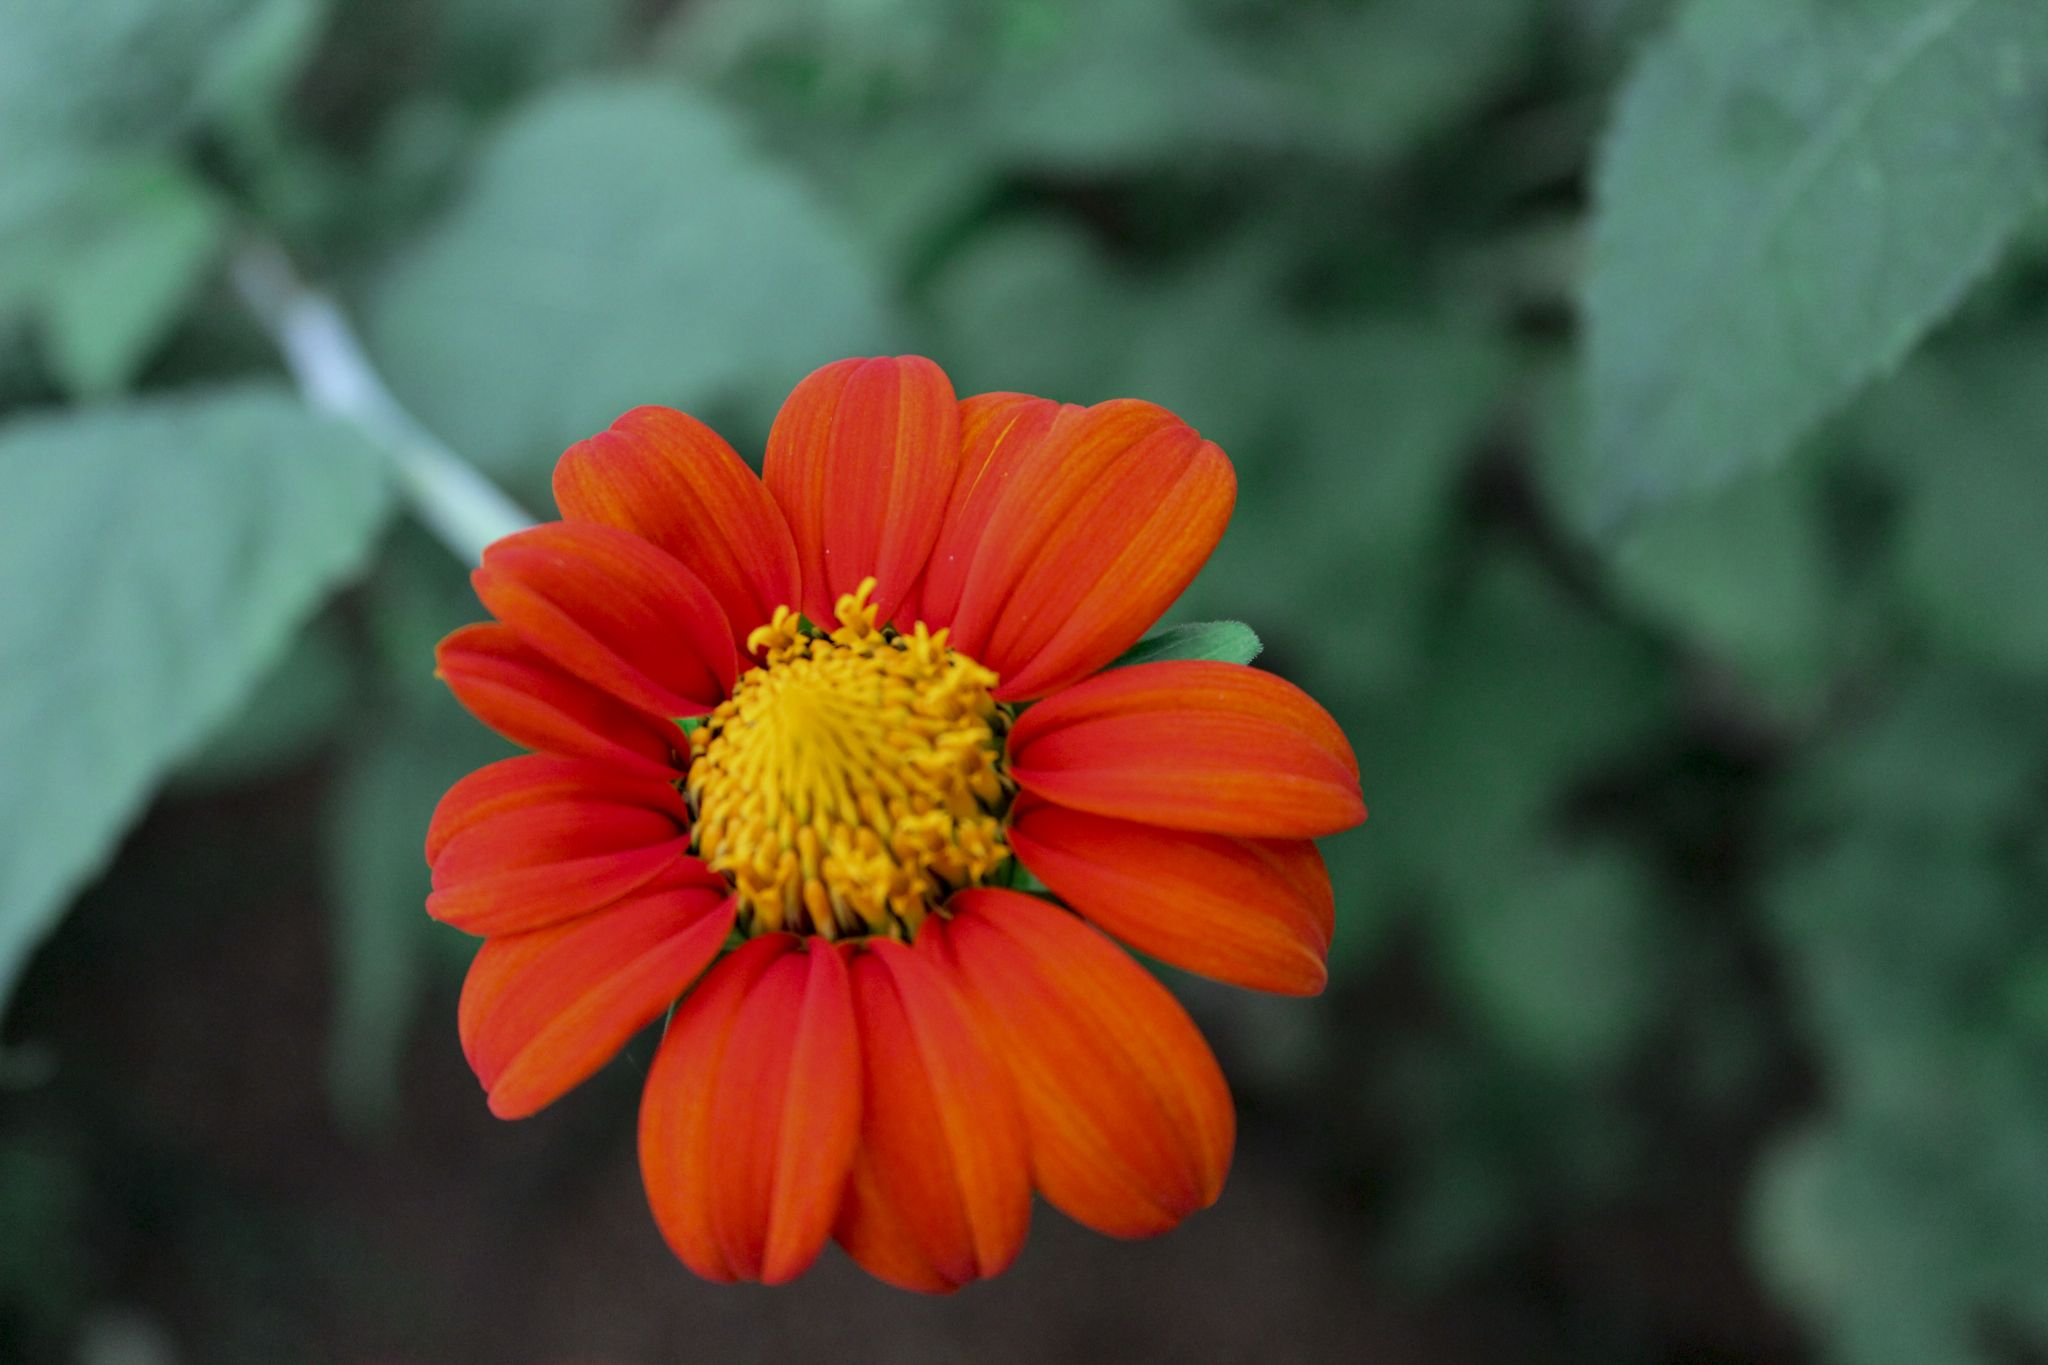 flower 2 by Anand094